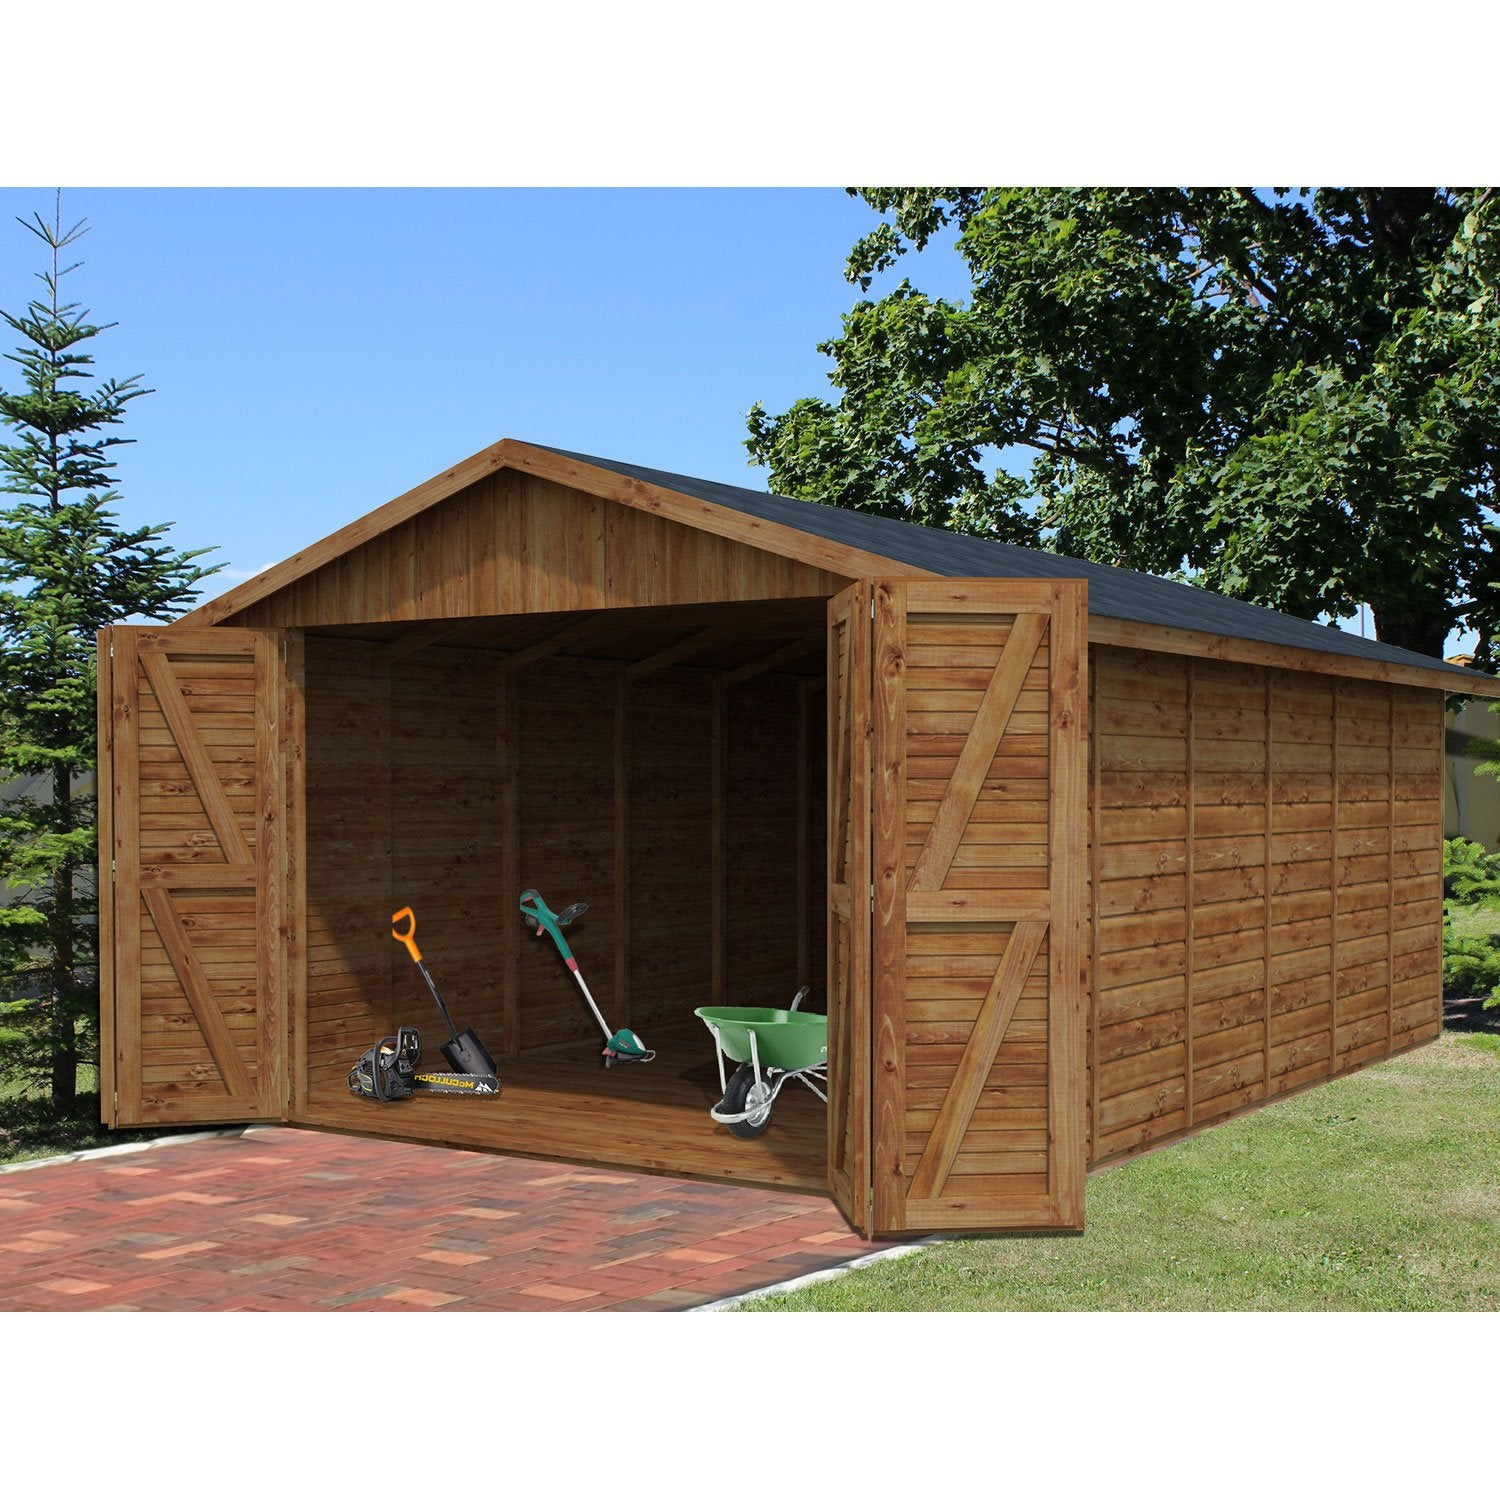 Garage bois tourmalet 2 voitures m leroy merlin for Garage en bois en solde